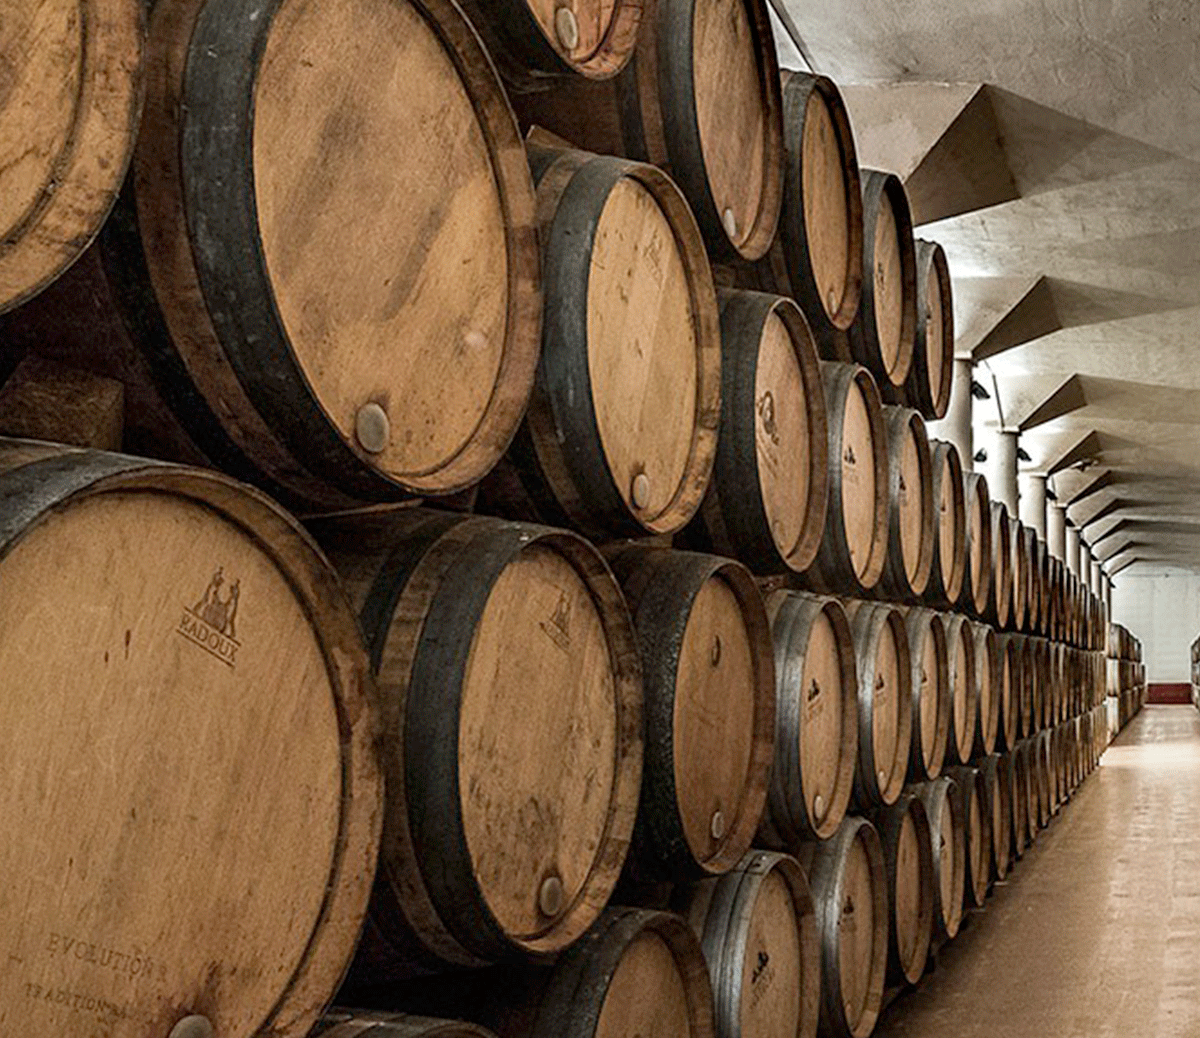 Detail of our barrel room